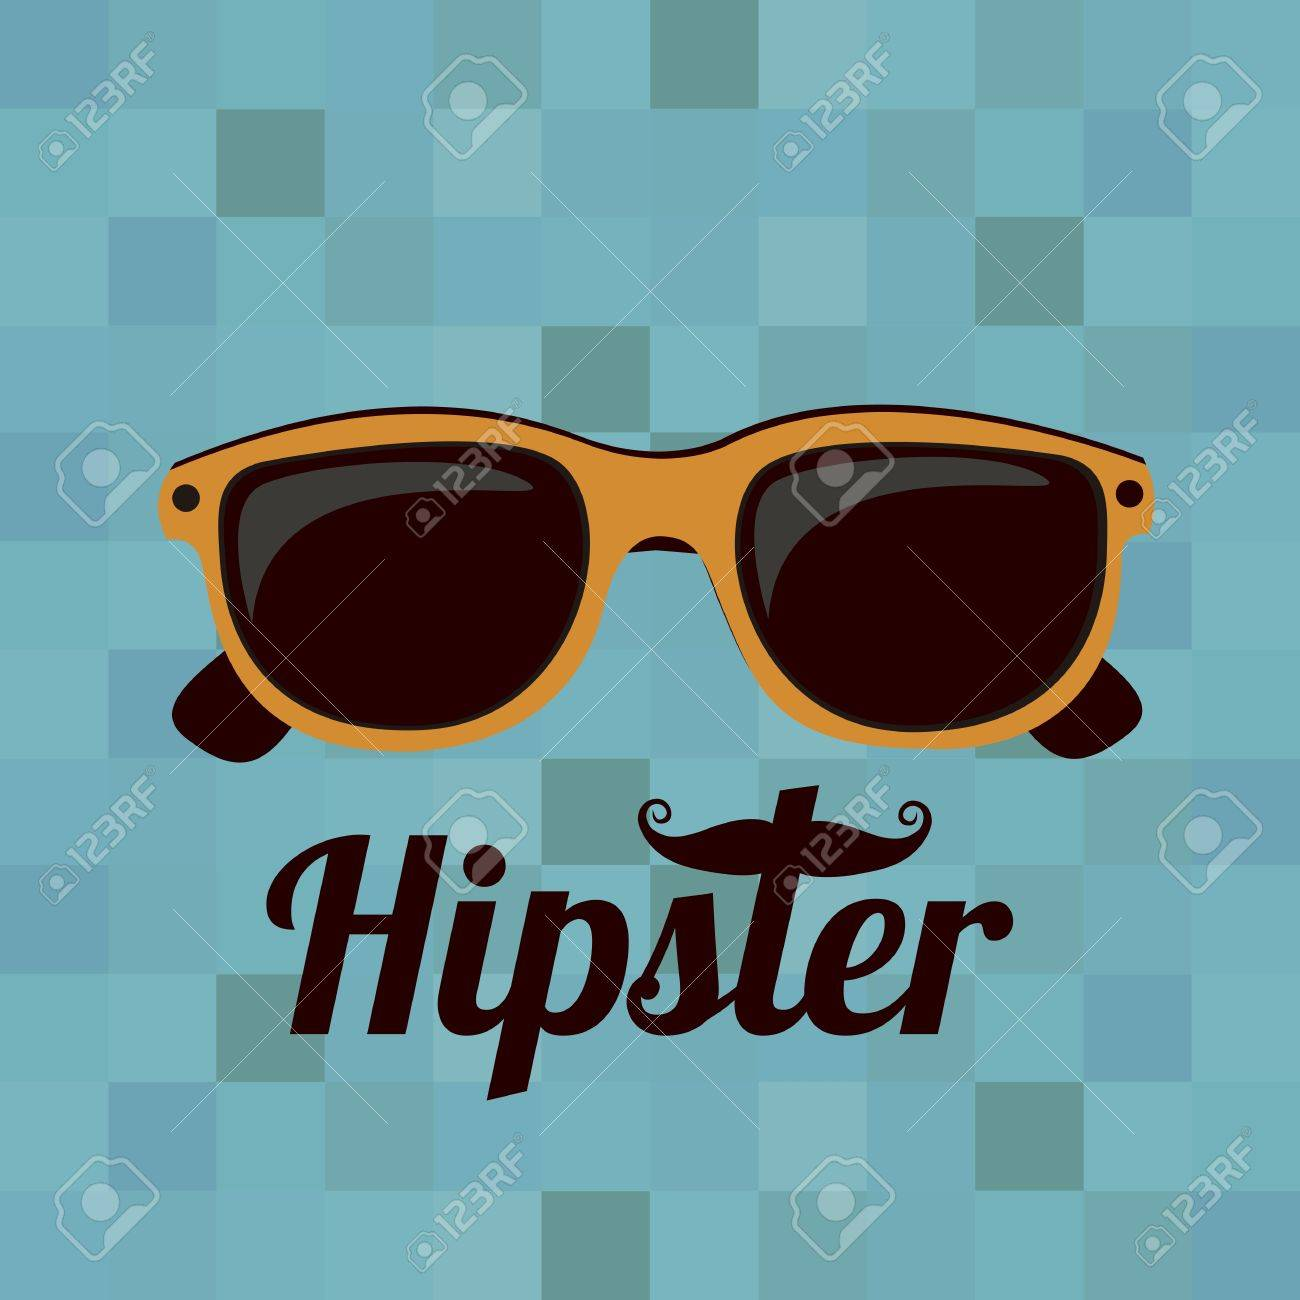 Illustration of style hipster, hipster culture and community, vector illustration Stock Vector - 19218425